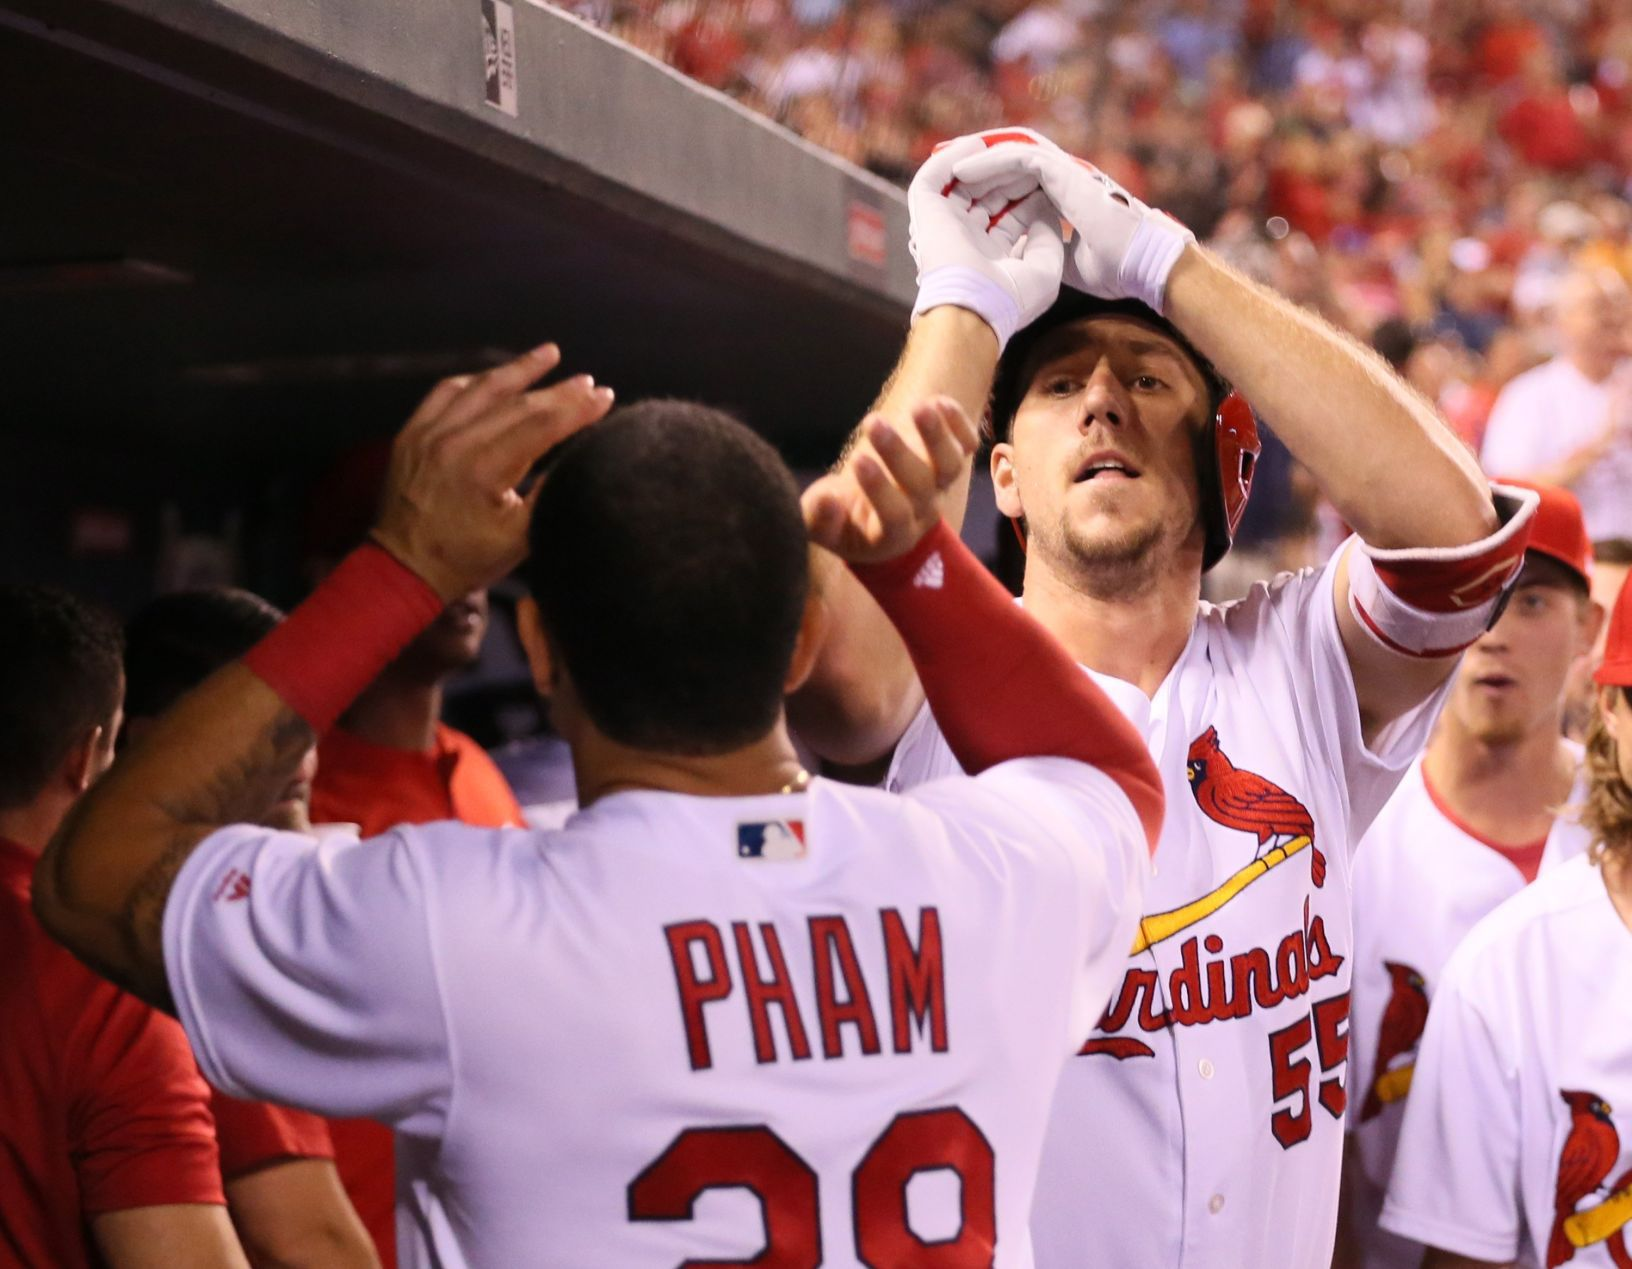 Weaver helps pitch Cardinals to 6-2 win over Padres